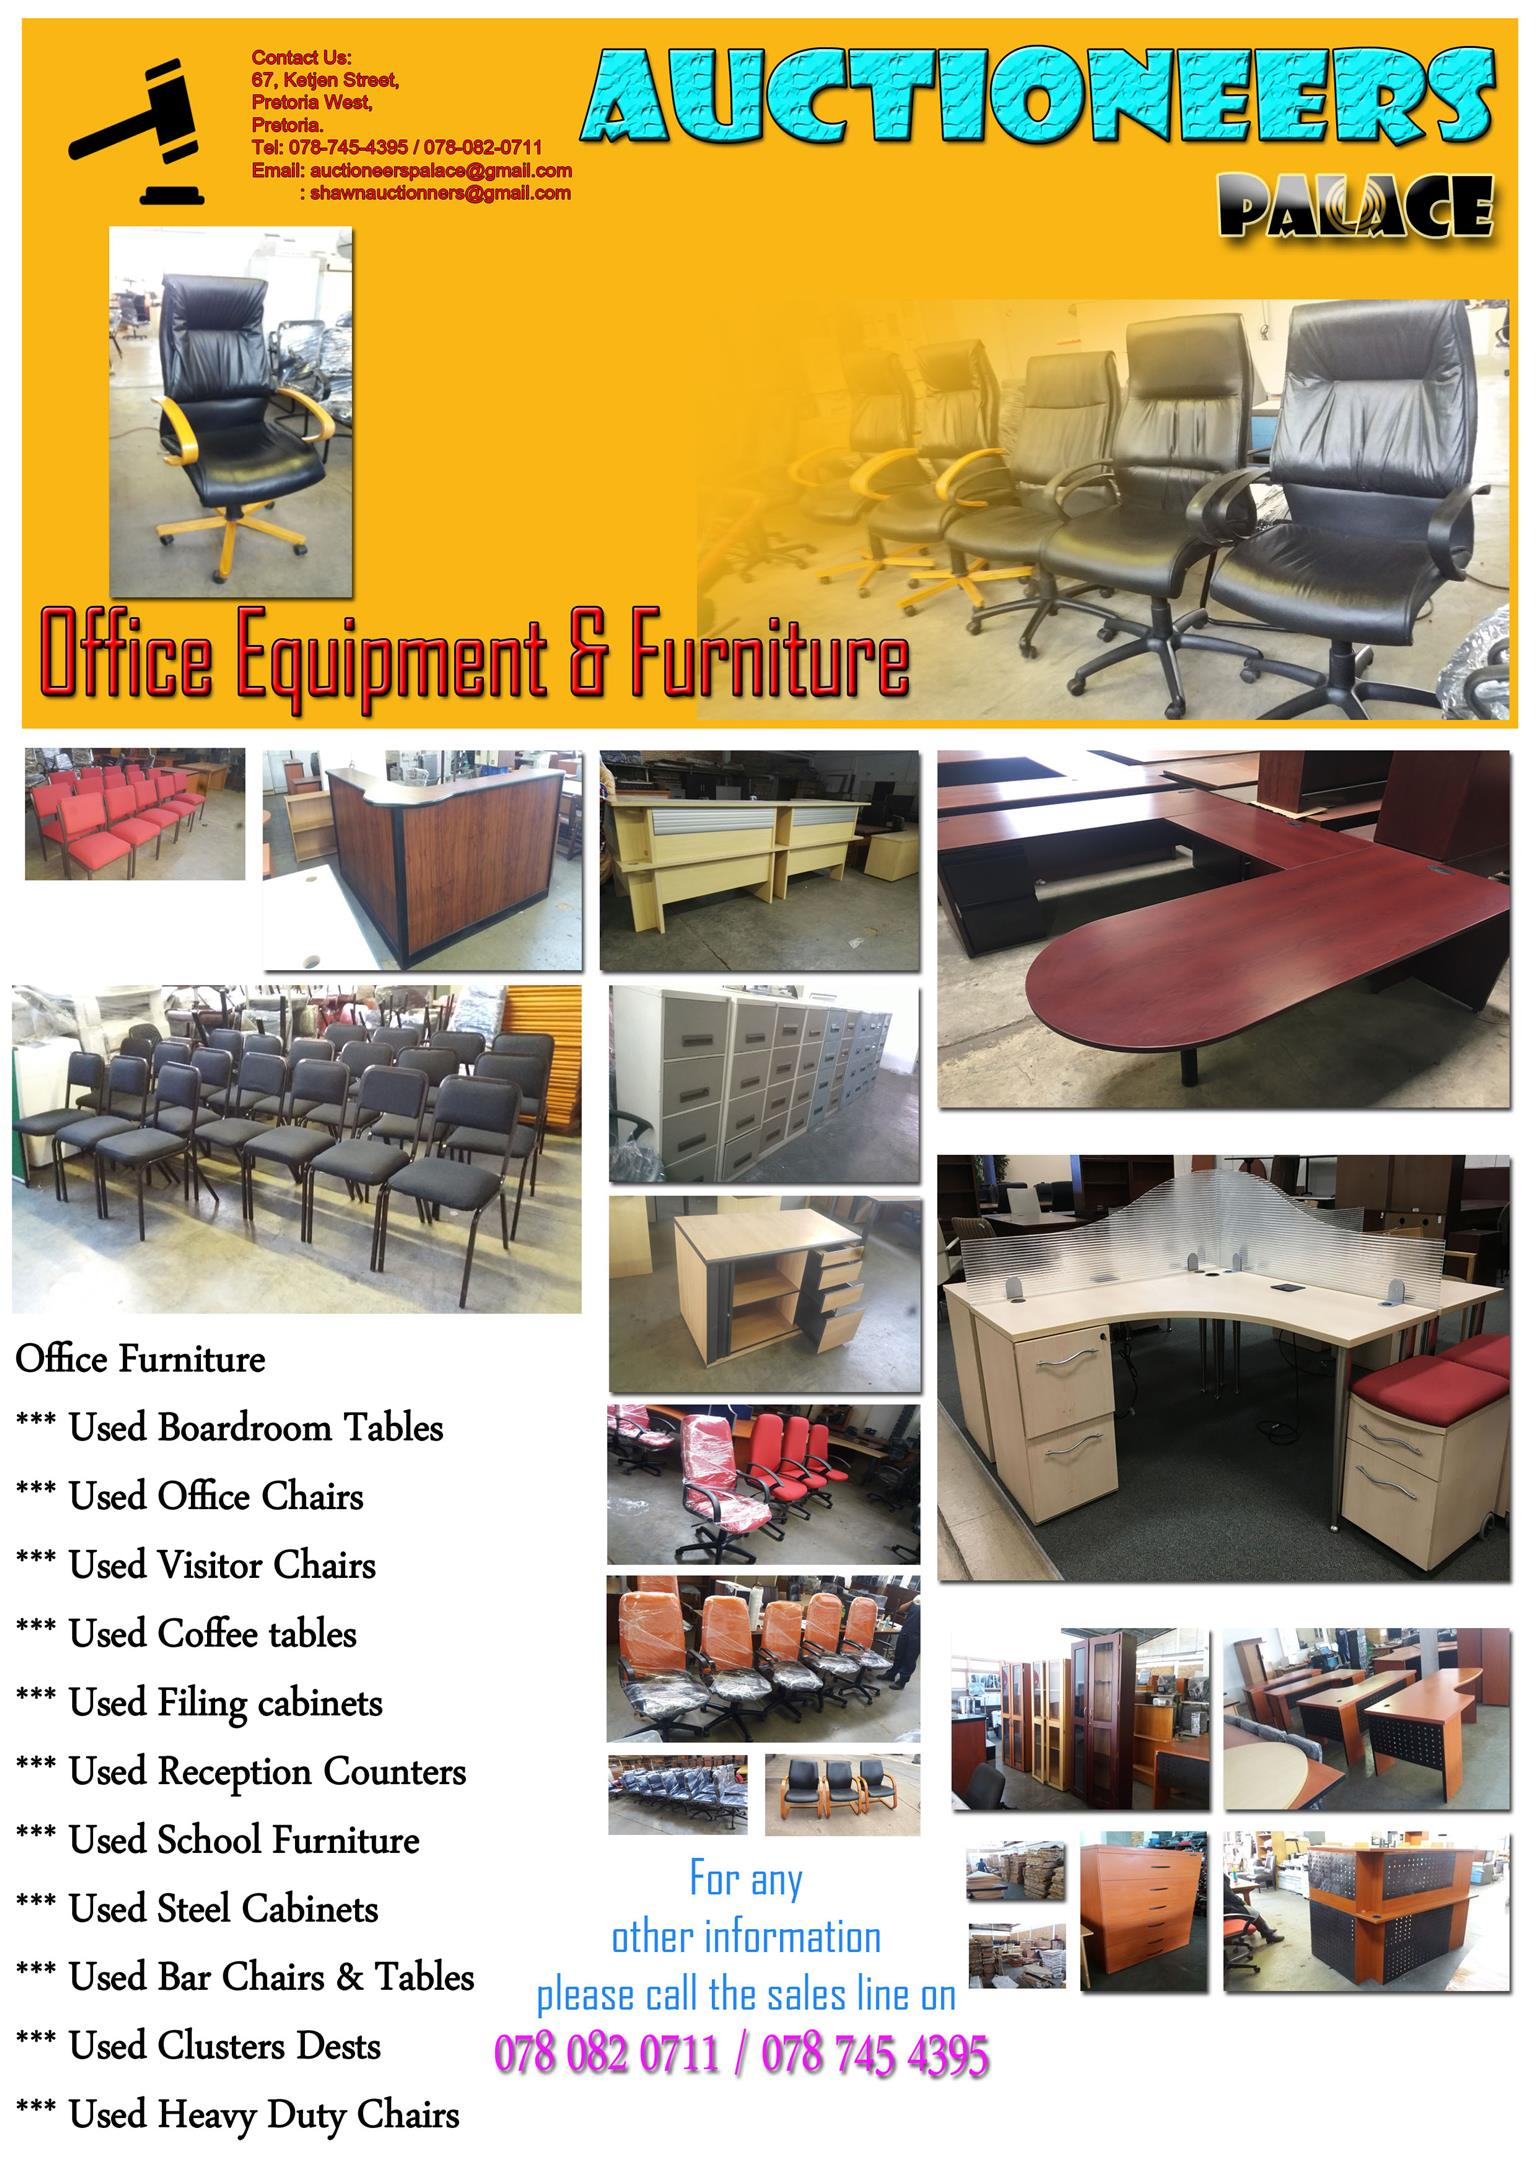 Office Equipment & Furniture